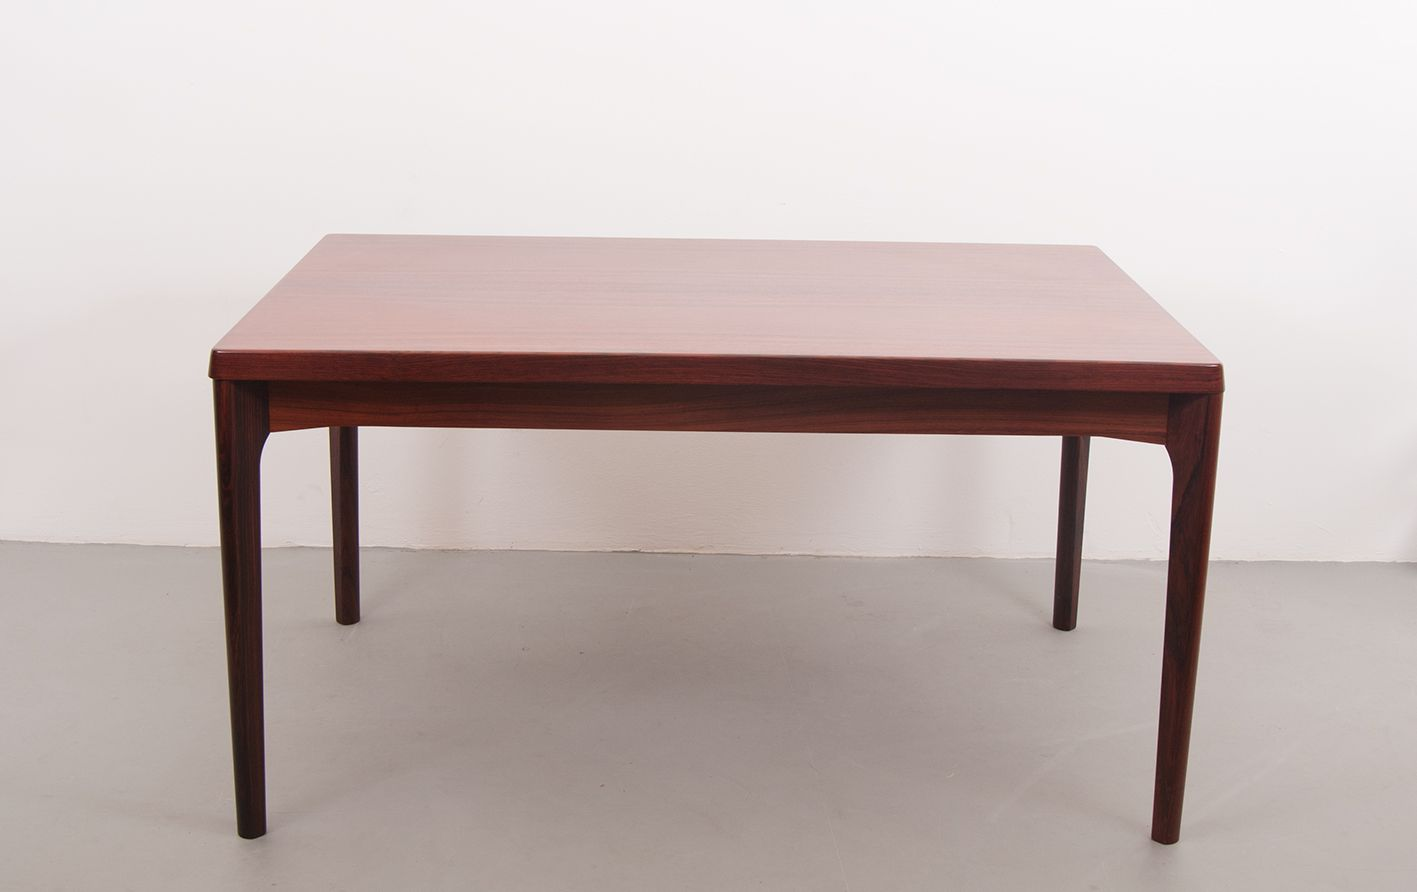 Extensible dining table by henning kj rnulf for vejle for Table exterieure extensible